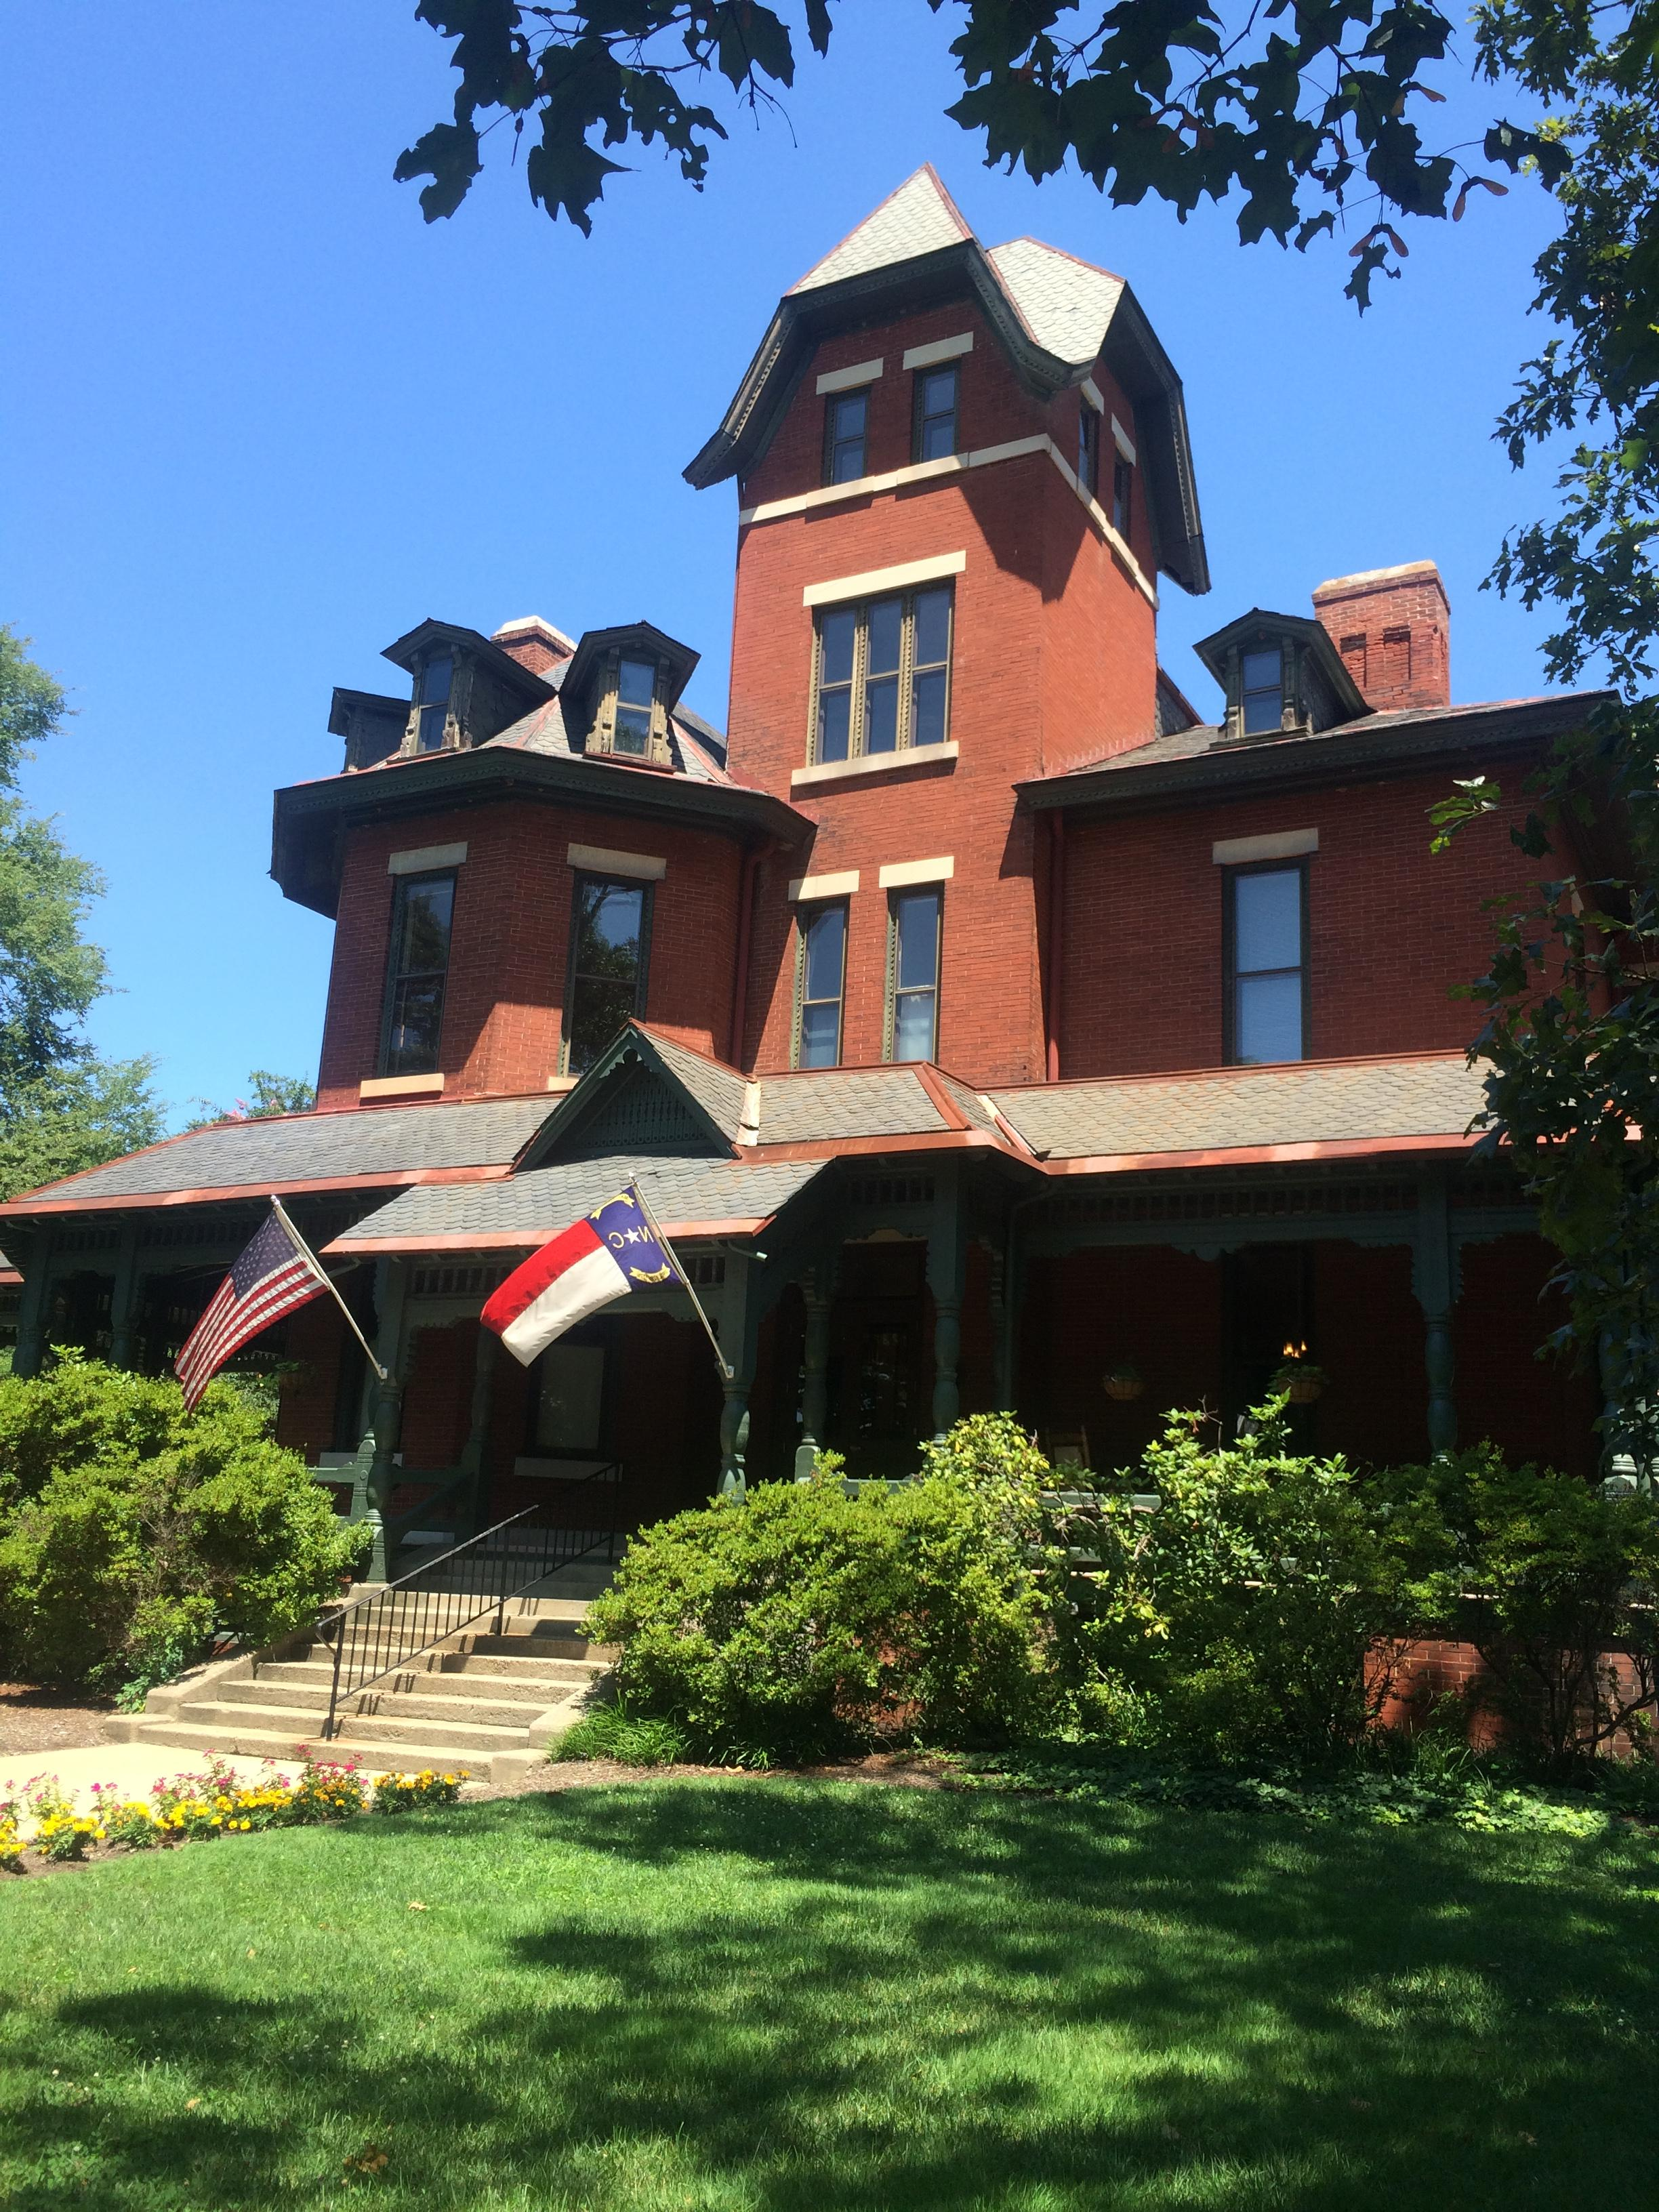 Another view of the front, western facade taken at an angle. US and North Carolina flags waving in the summer breeze.